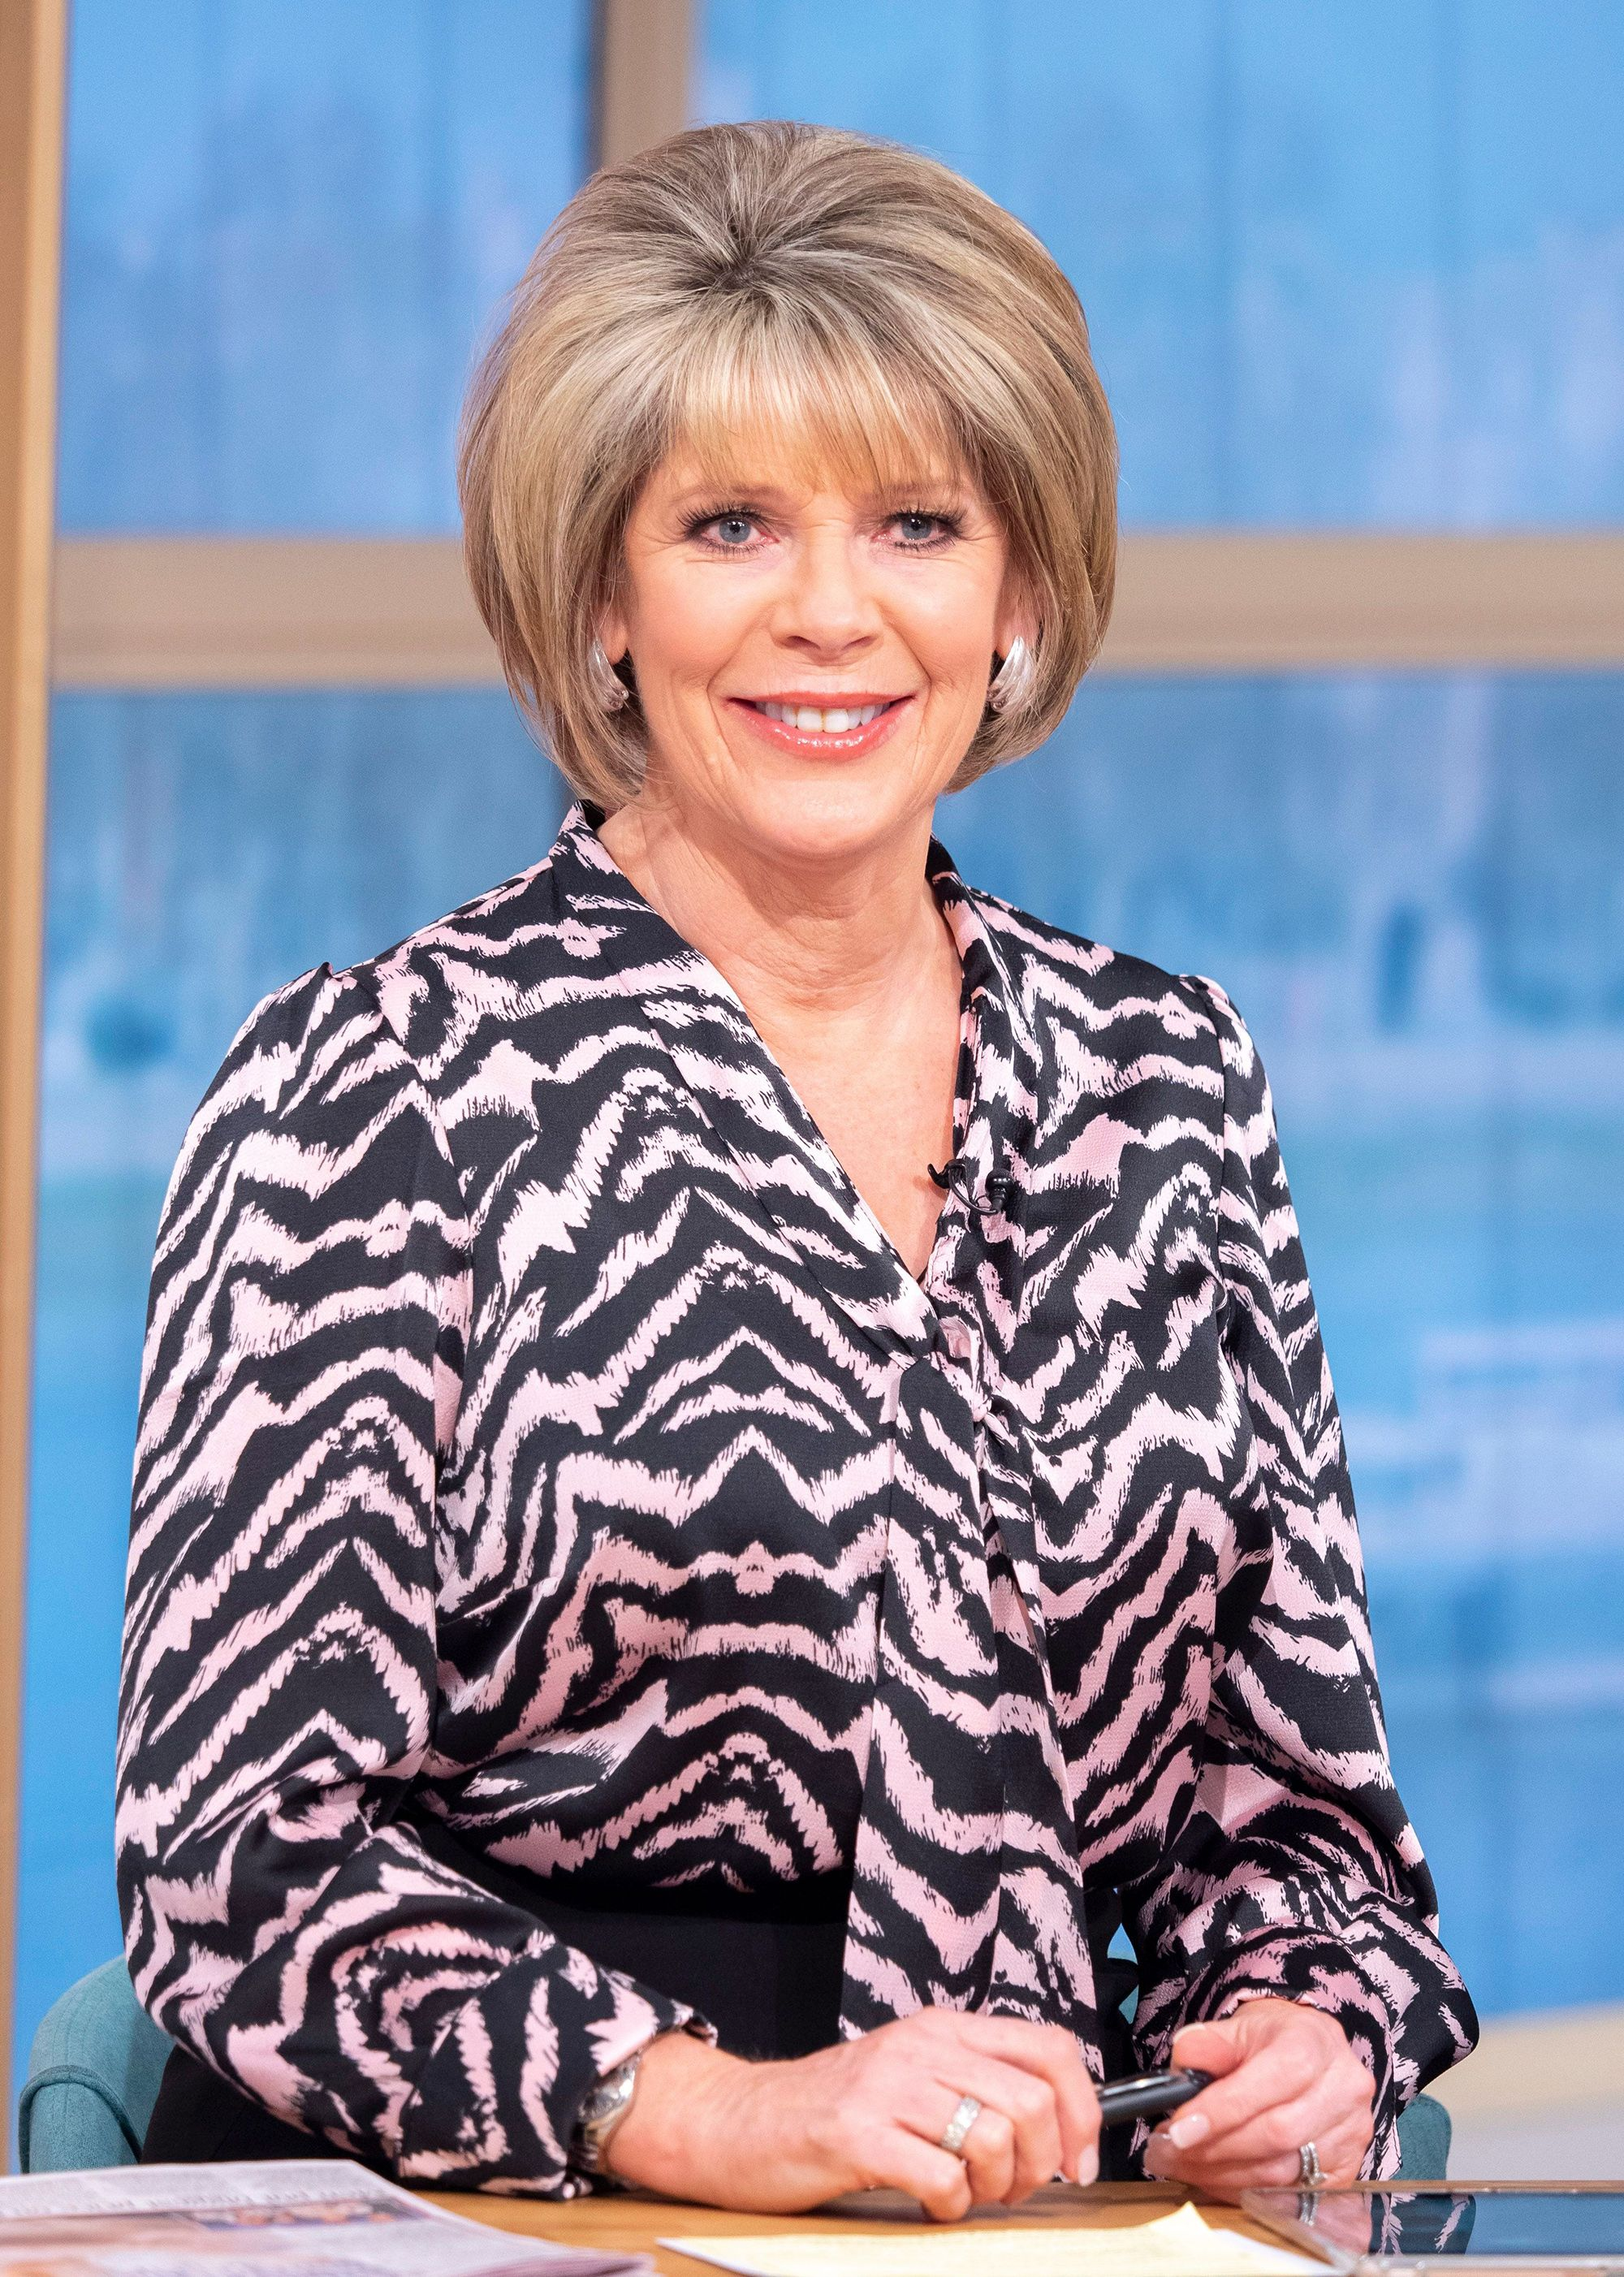 423a24fb21cf8 Fans are loving Ruth Langsford's £35 River Island satin blouse